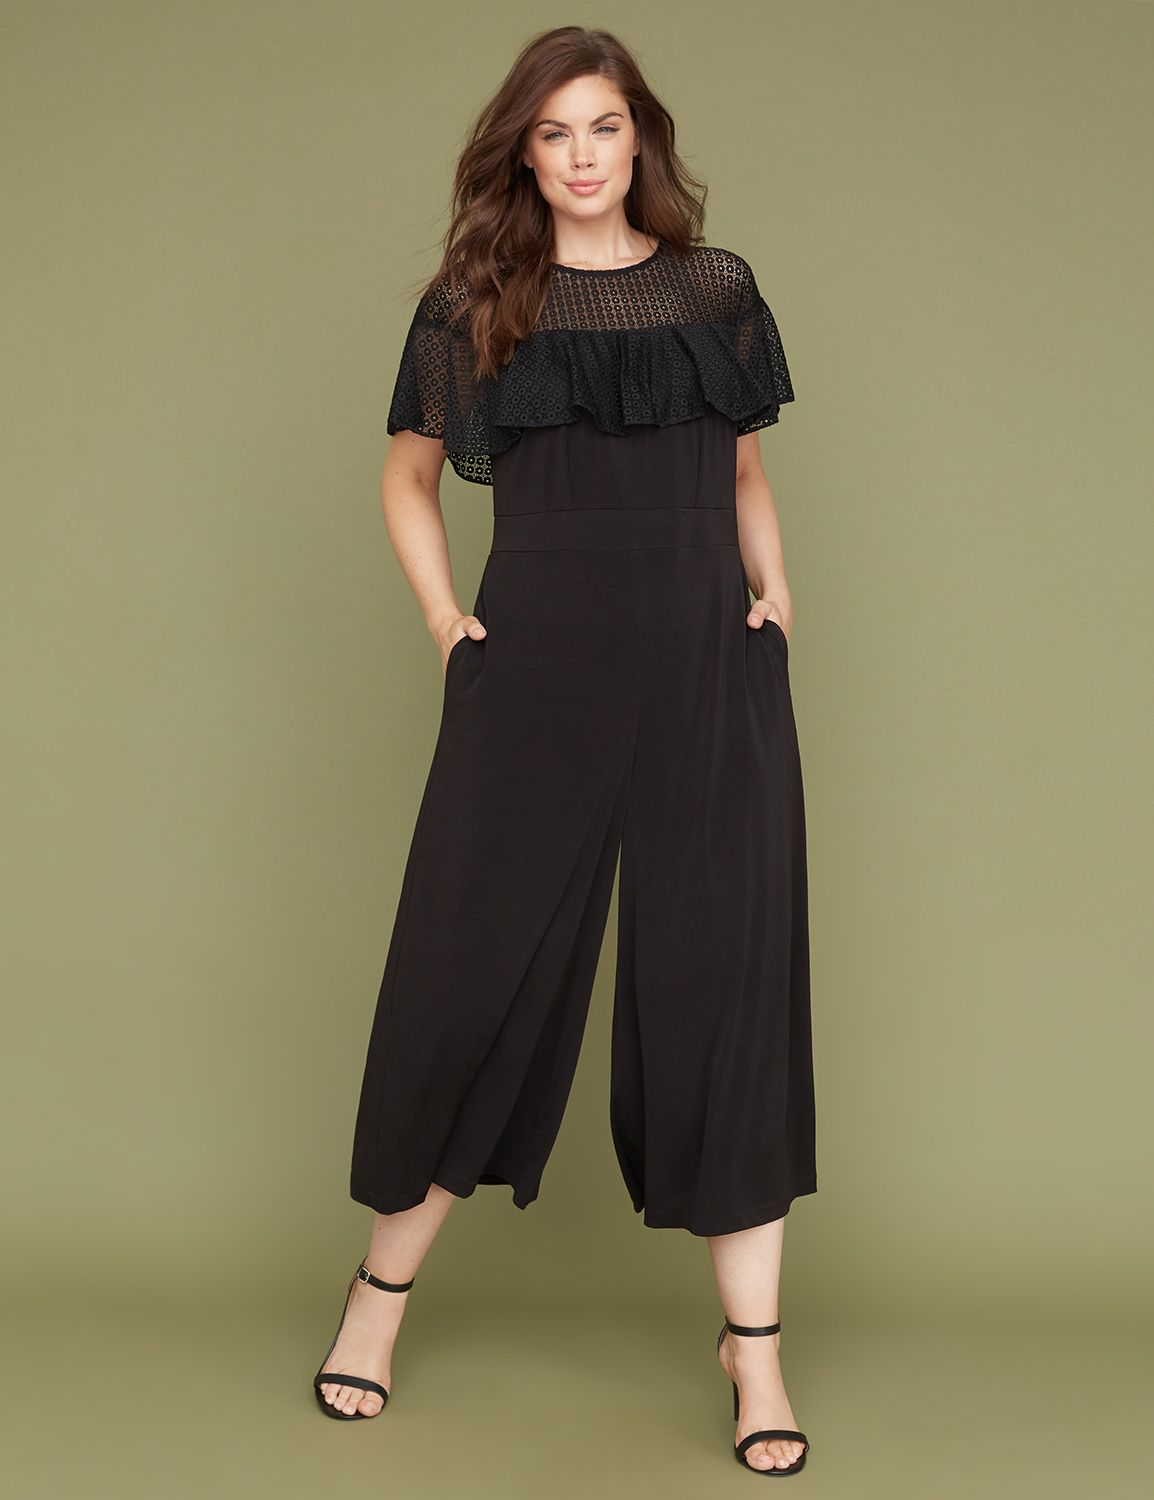 Vintage High Waisted Trousers, Sailor Pants, Jeans Lane Bryant Womens Eyelet Lace  Ruffle Jumpsuit 24P Pitch Black $89.95 AT vintagedancer.com